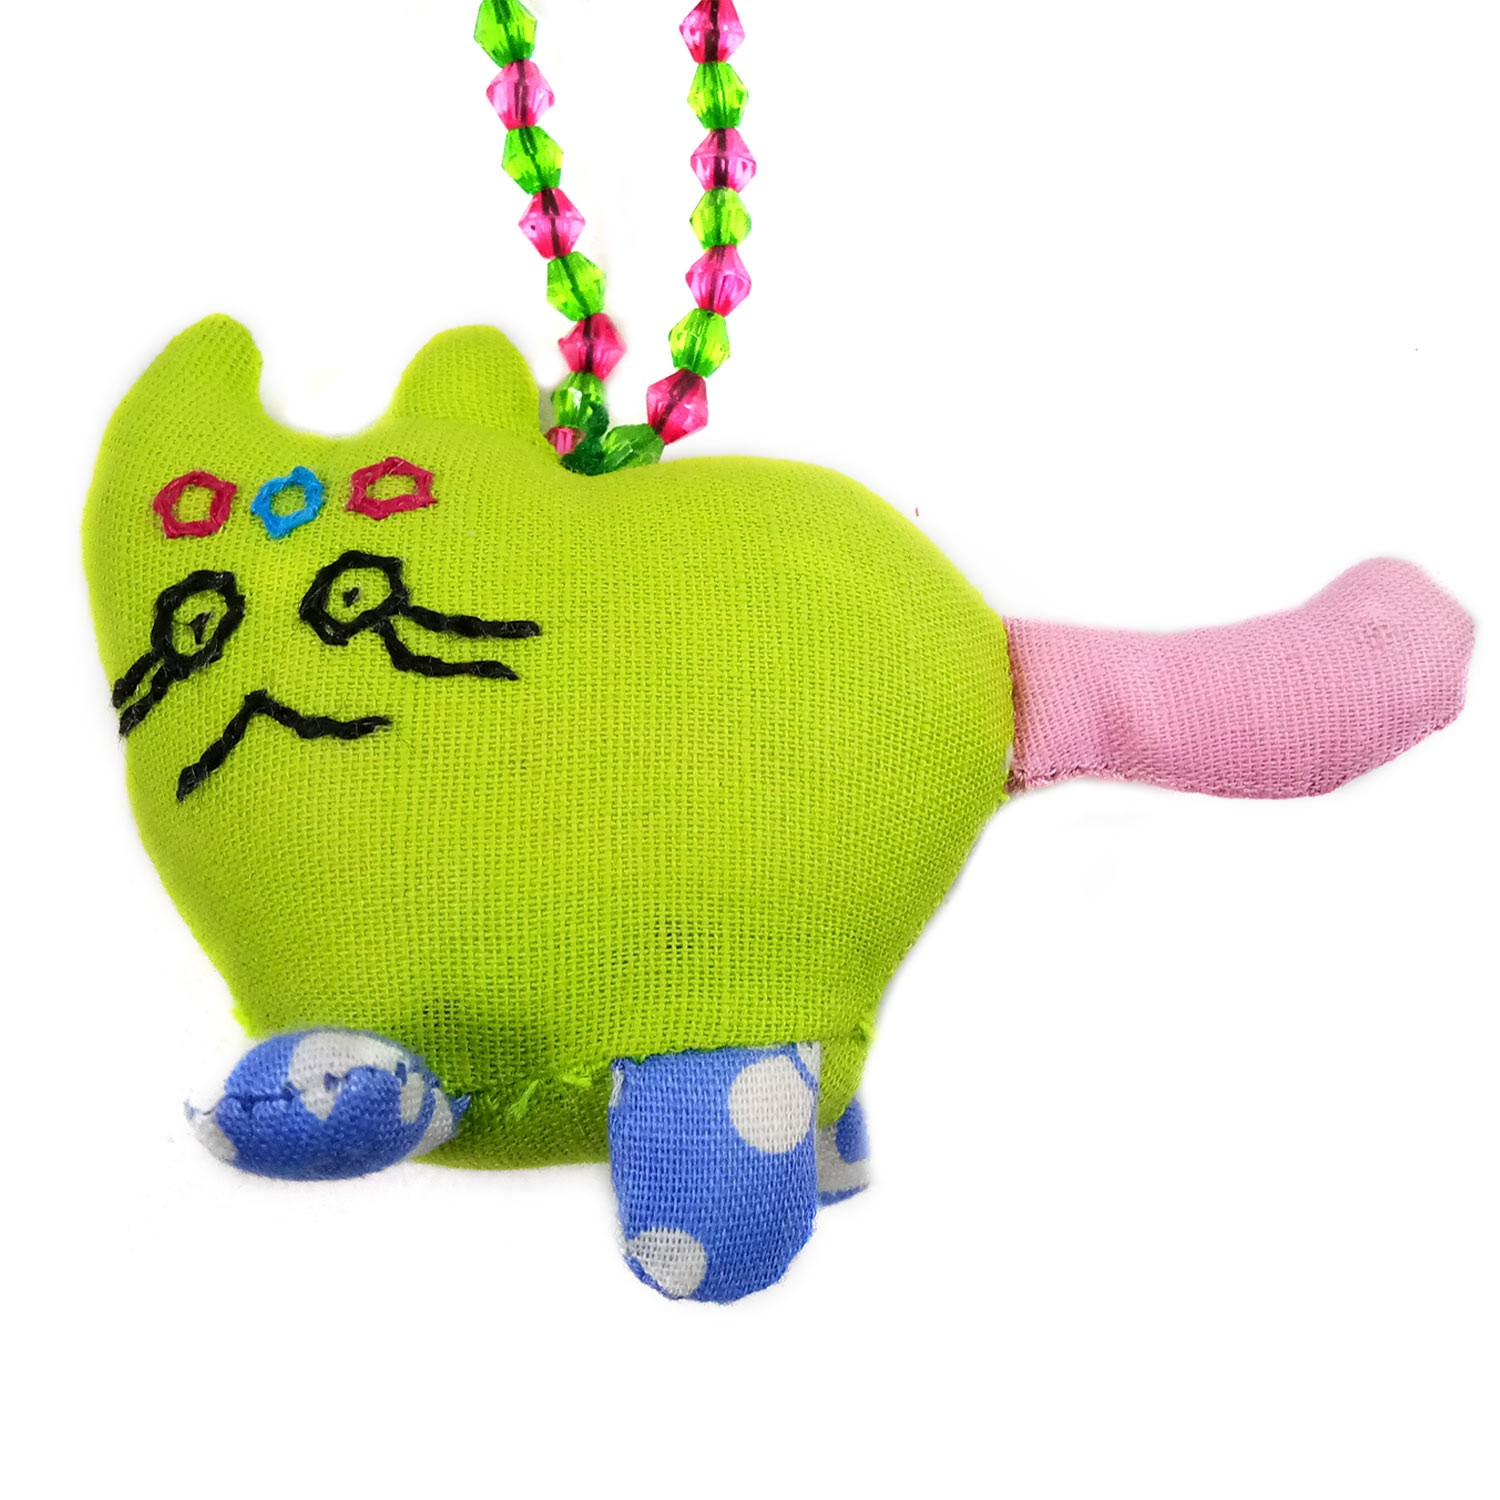 Handmade Multicolor Art Cat Keychain or Keyring | Girls Bag Decoration Charm | Decorative Ornaments  by Rural Artisan.